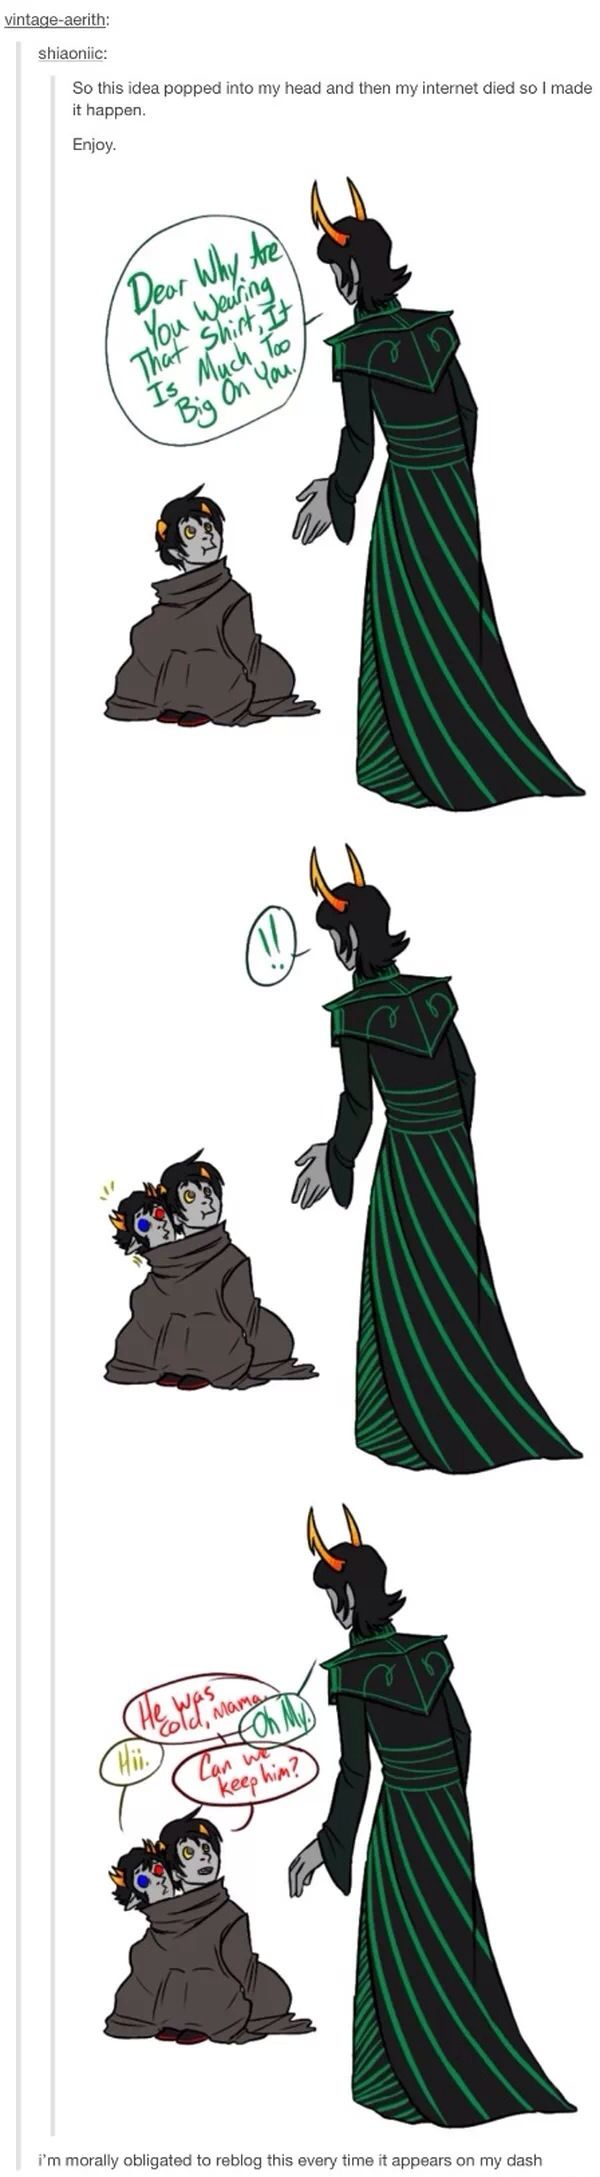 Everyone is morally obliged to repin this Signless psionic dolorosa adorableness